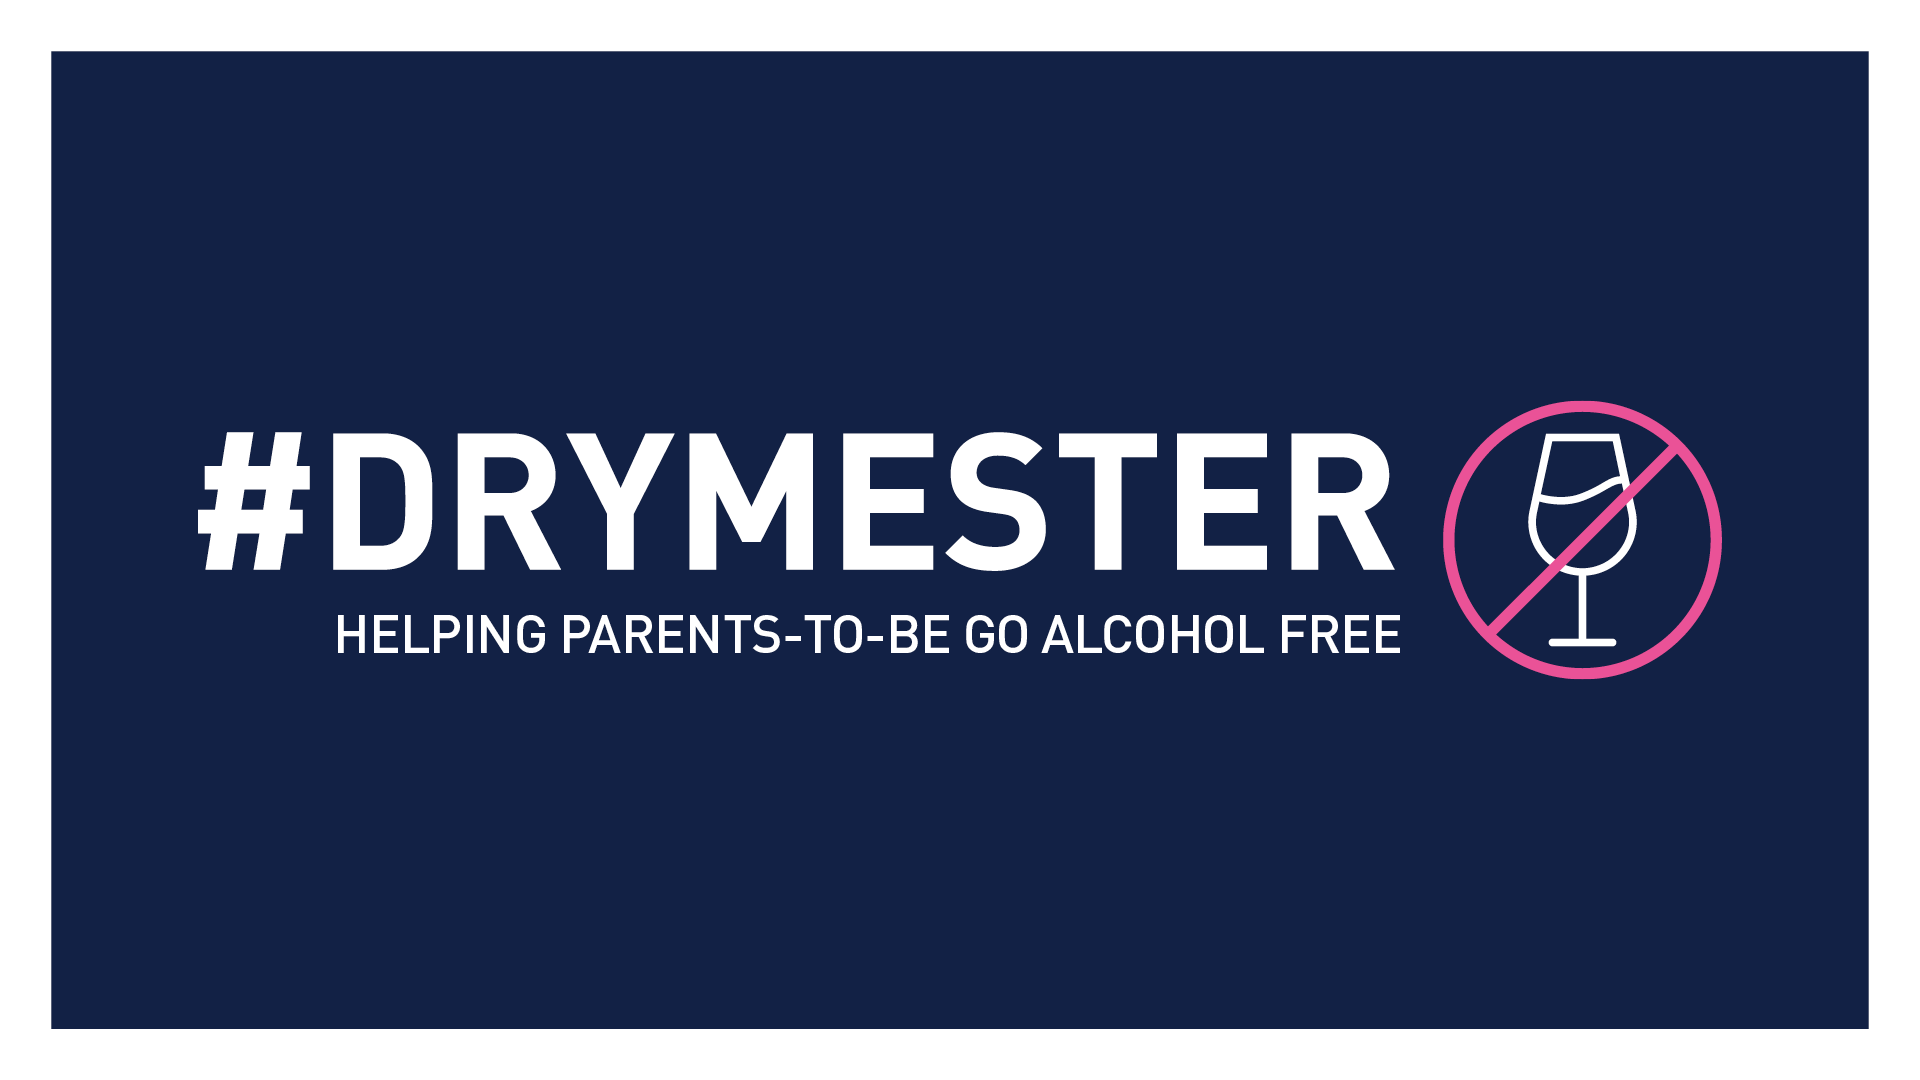 #DRYMESTER SHORTLISTED FOR MARKETING EXCELLENCE AWARDS!